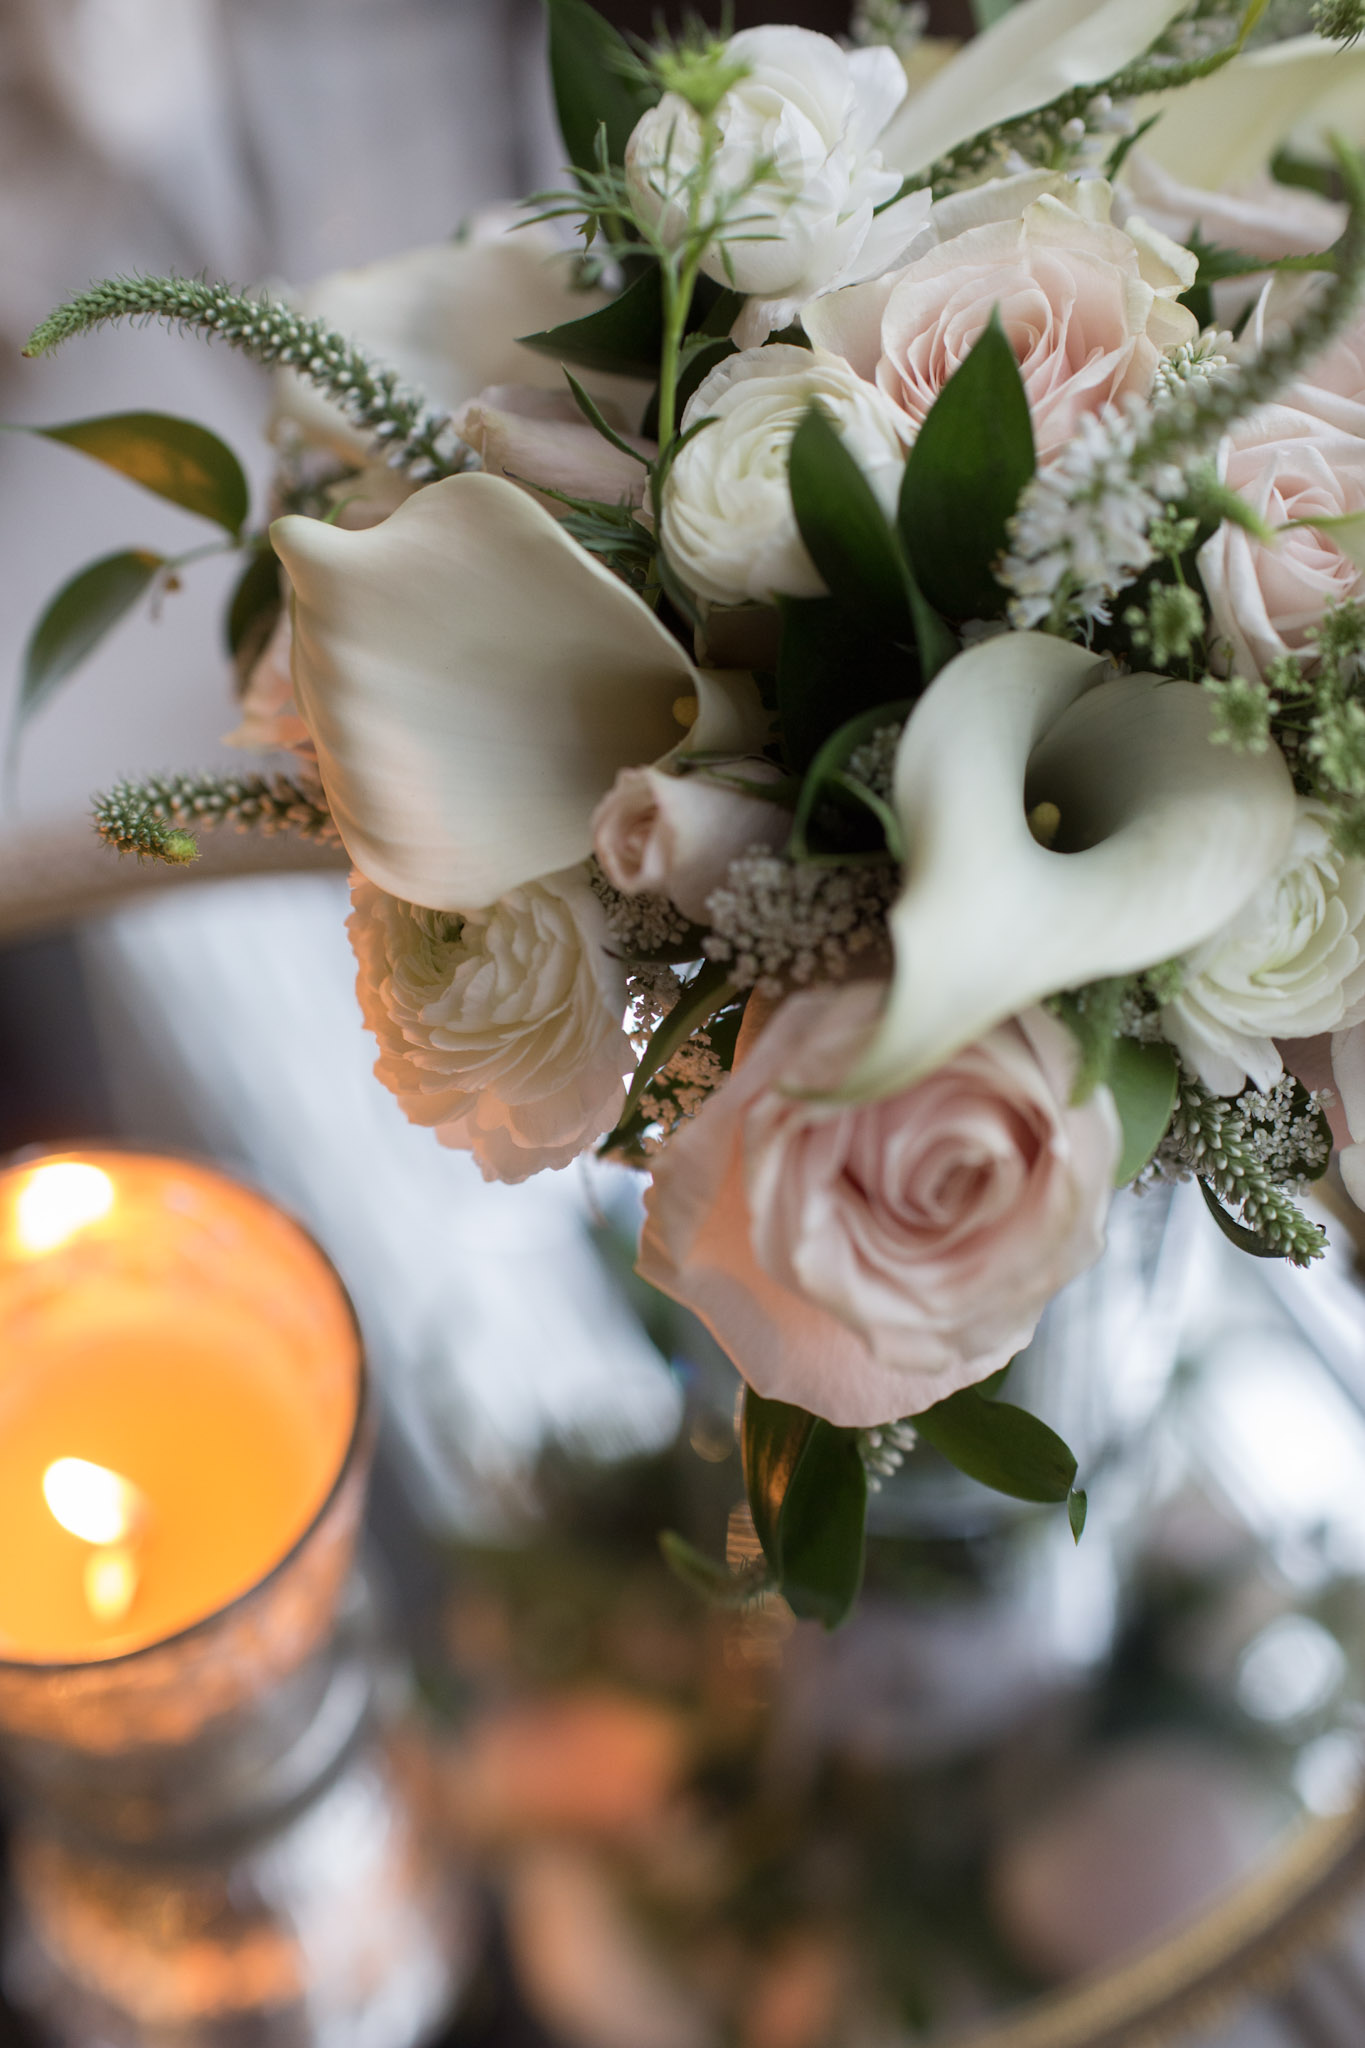 Kansas_City_Small_Wedding_Venue_Elope_Intimate_Ceremony_Budget_Affordable_Summer_Flowers_KM4A9204L&Z.JPG